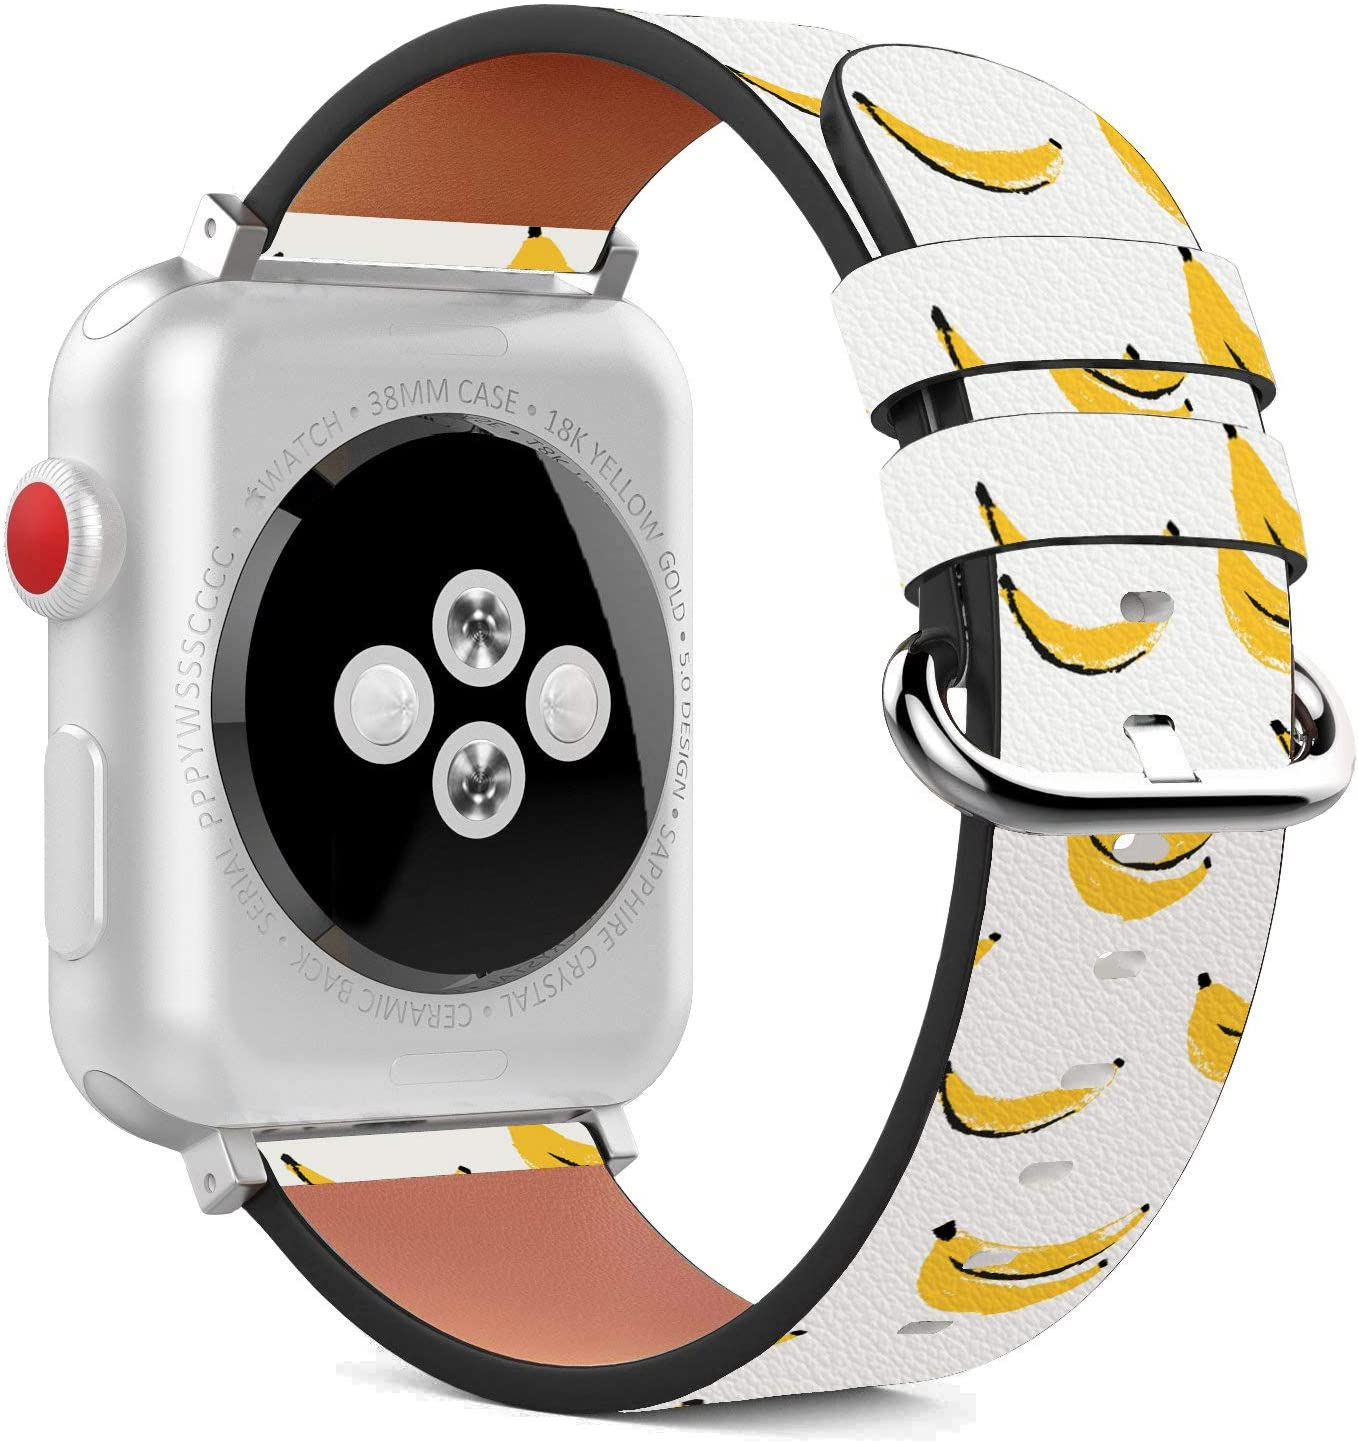 Compatible with Apple Watch - 38mm / 40mm (Serie 5,4,3,2,1) Leather Wristband Bracelet with Stainless Steel Clasp and Adapters - Yellow Banana